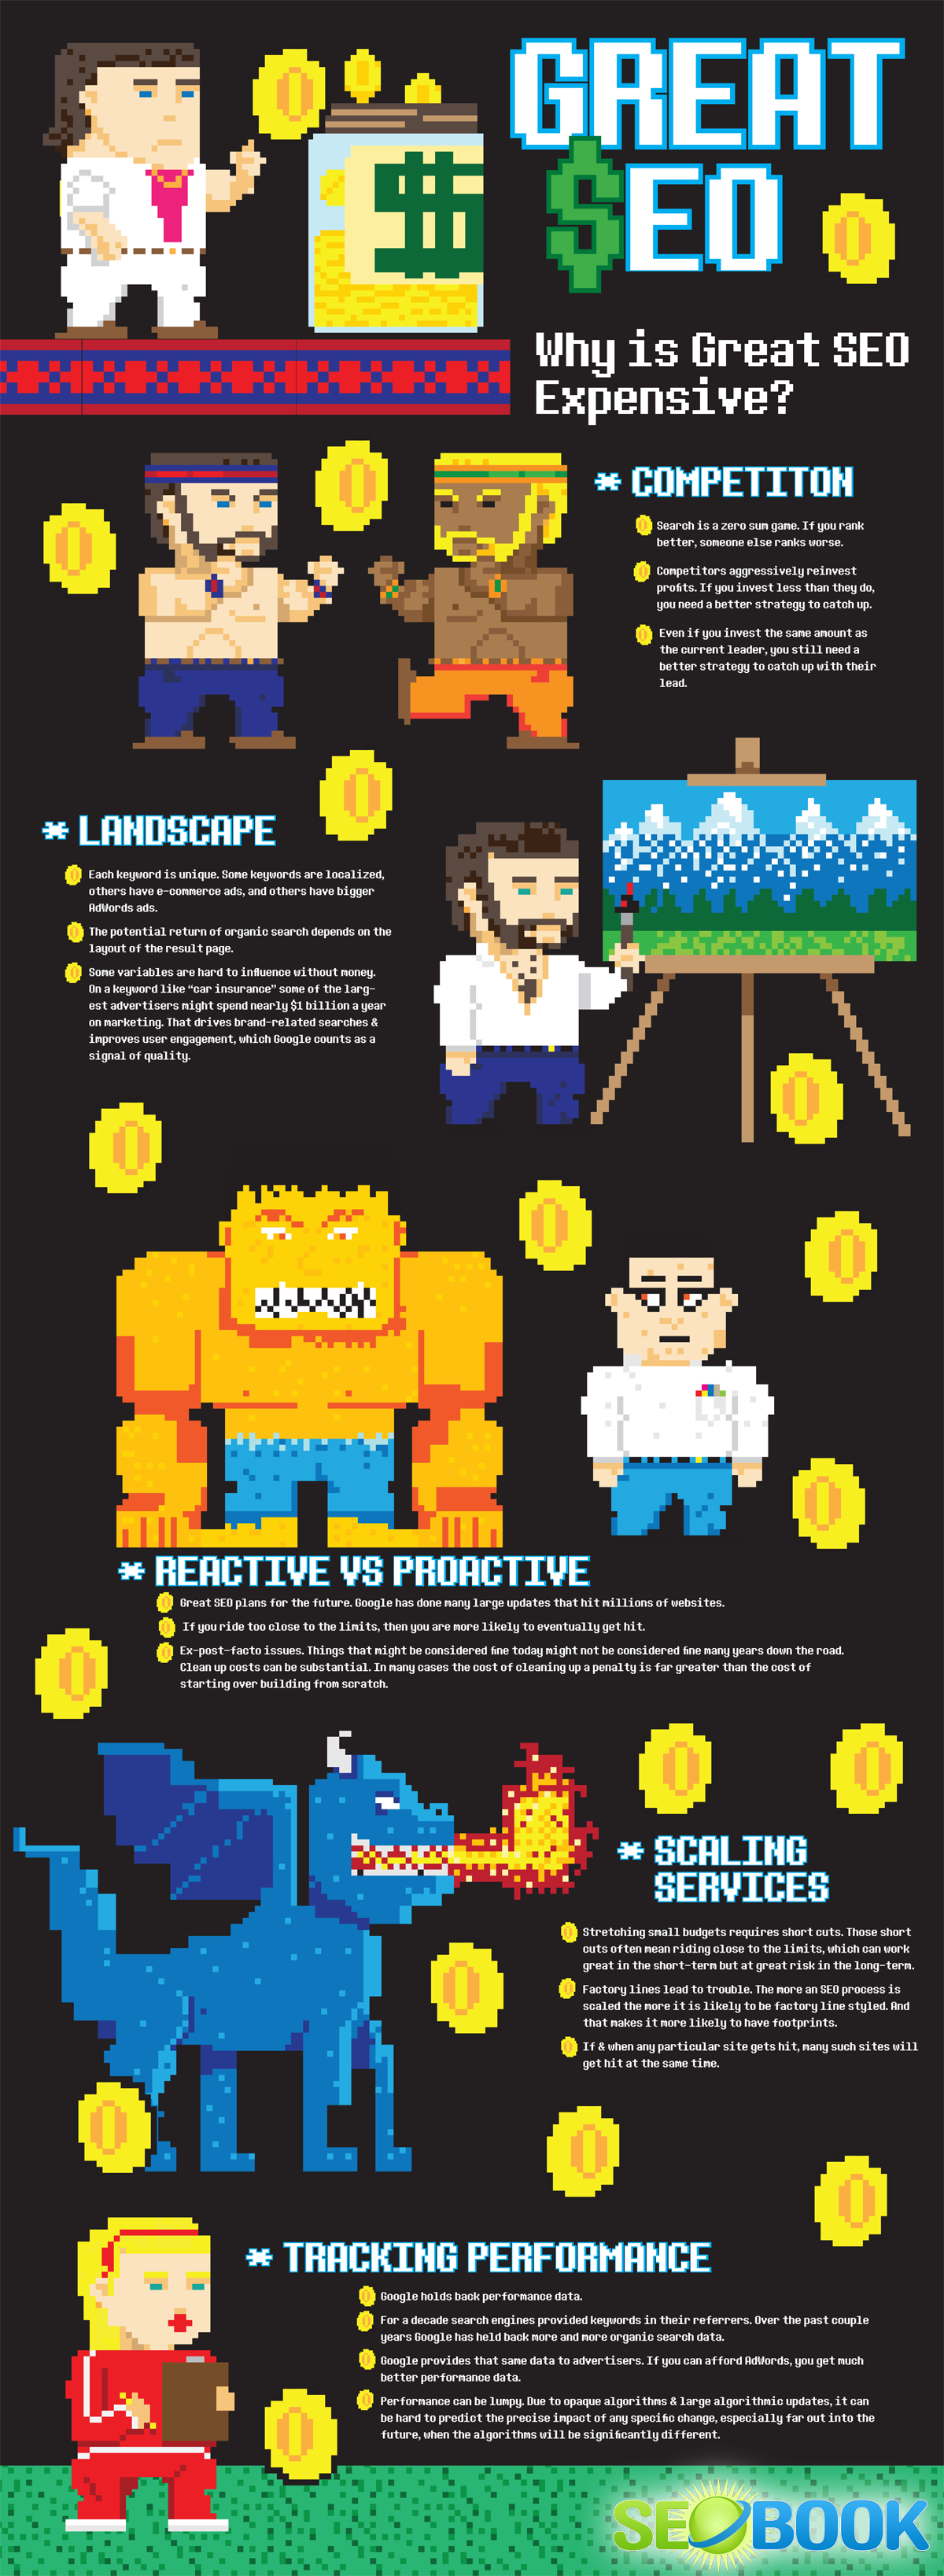 why is great seo so expensive infographic